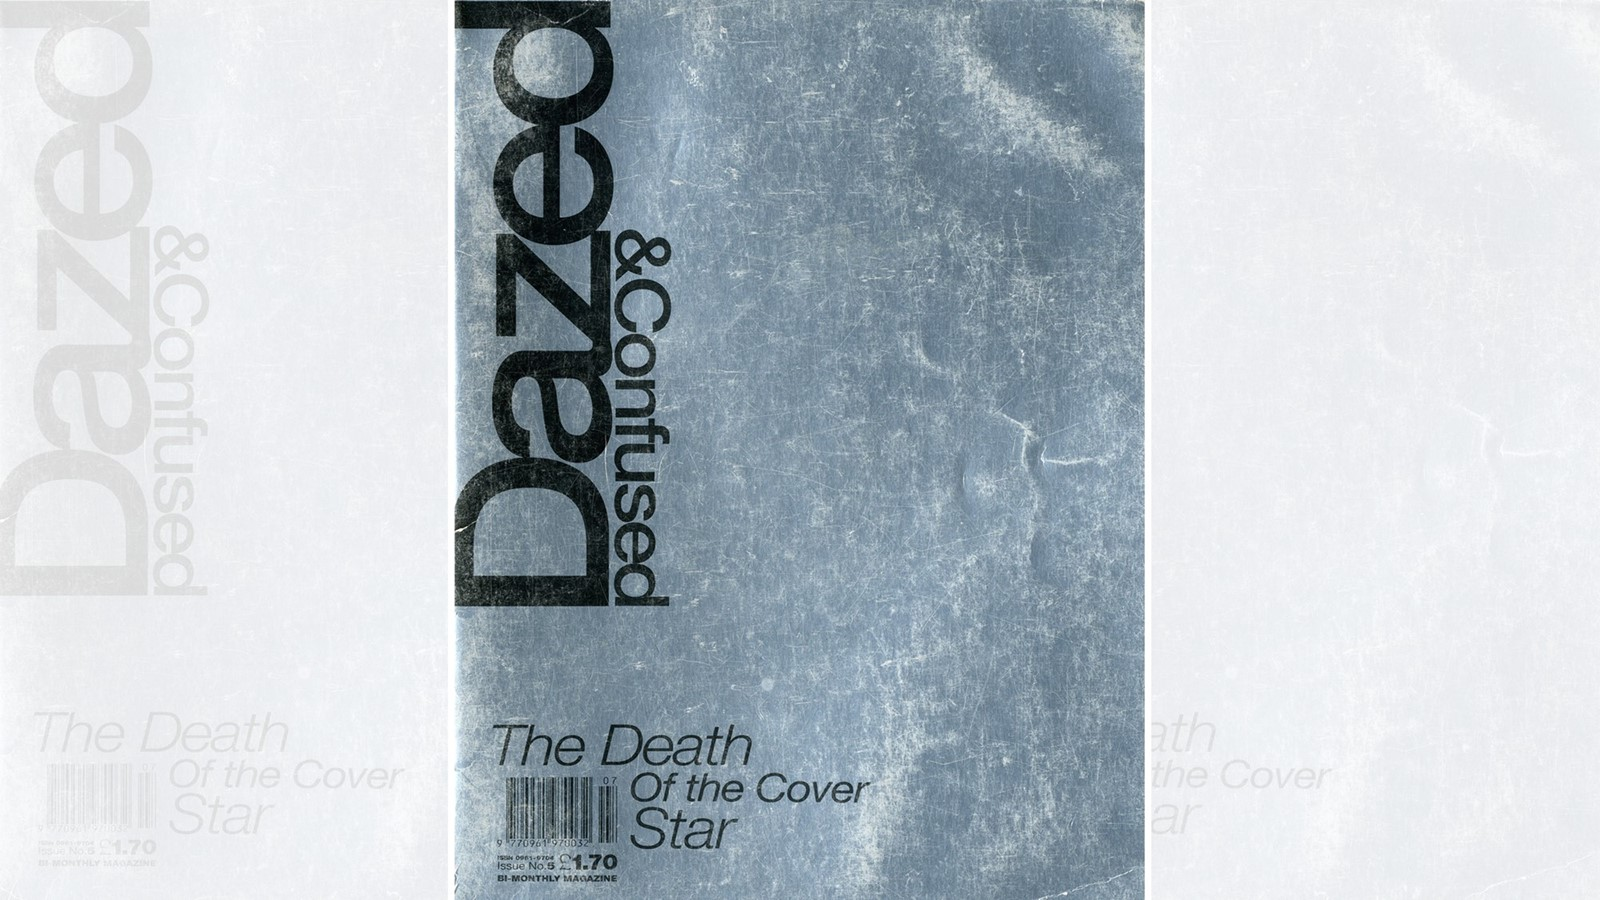 1993, Death Of The Cover Star